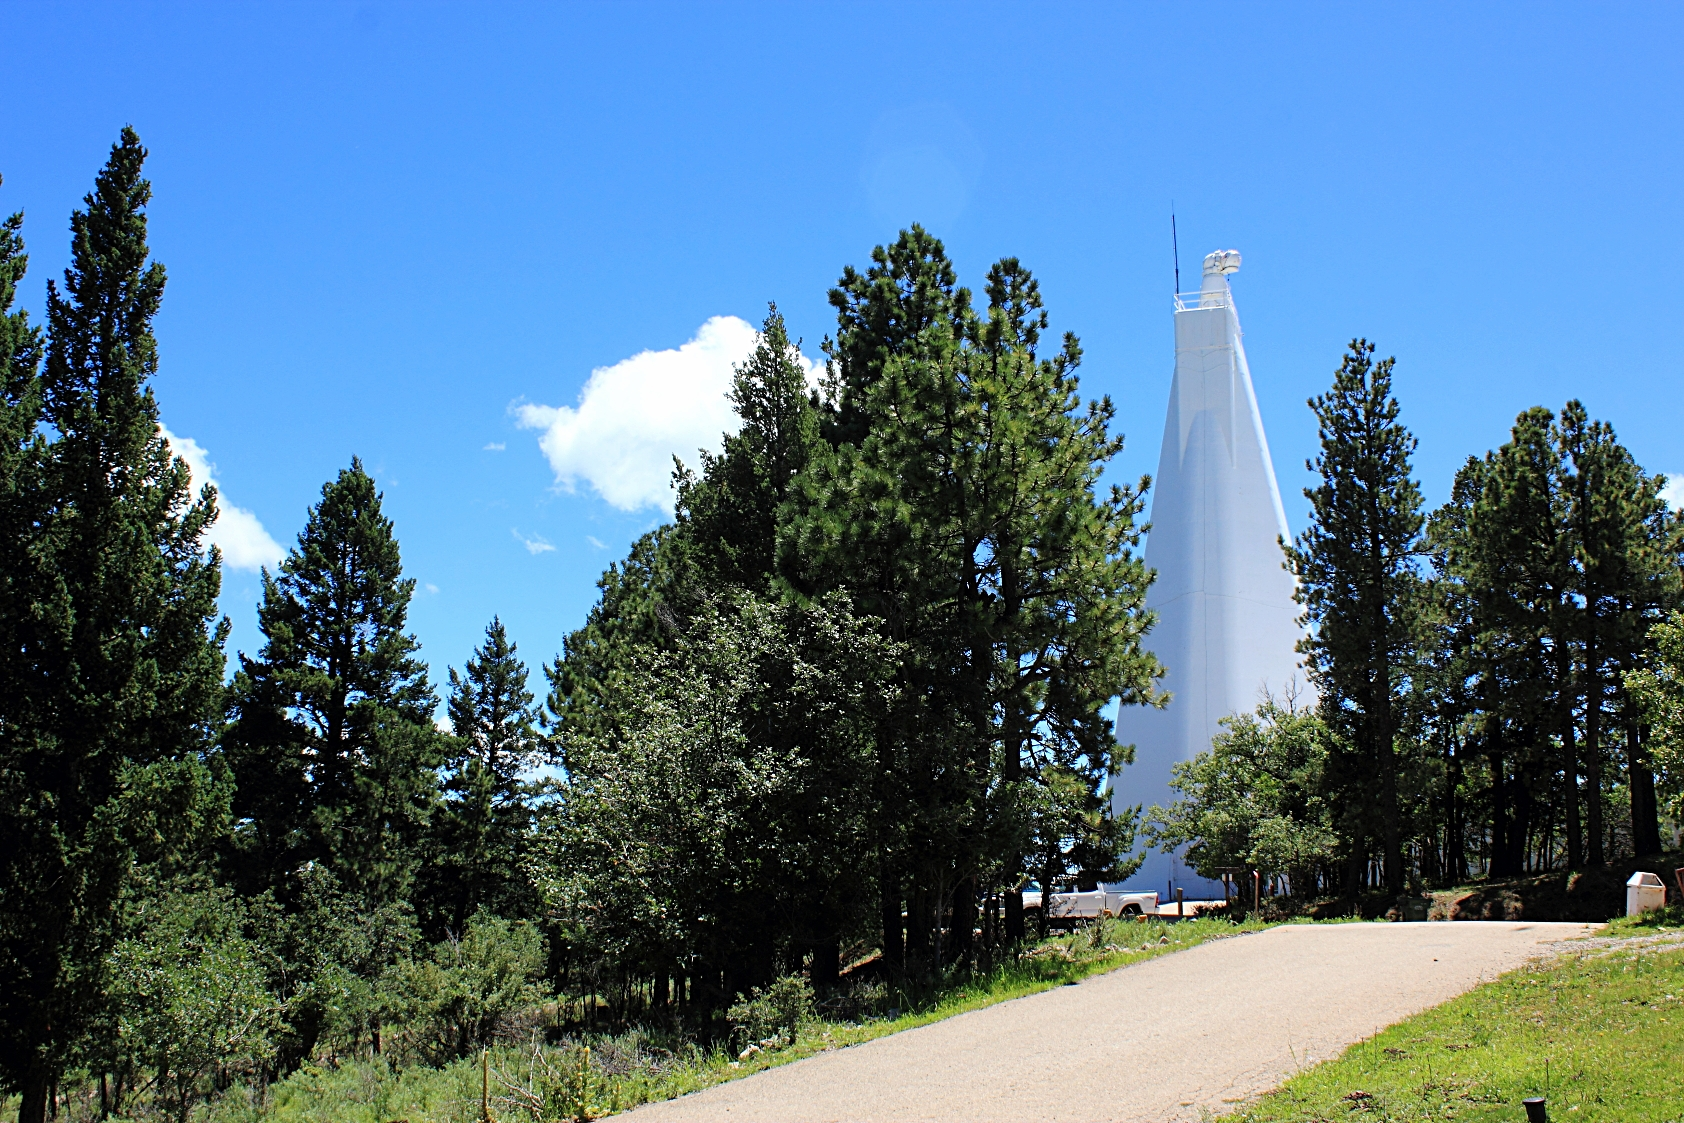 Located in the heart of the scenic Lincoln National Forest, Sunspot Solar Observatory has been a premier facility for solar research since its establishment in 1947. The Dunn Solar Telescope (above), built in 1969, remains to date one of the best ground-based solar observatories in the world.